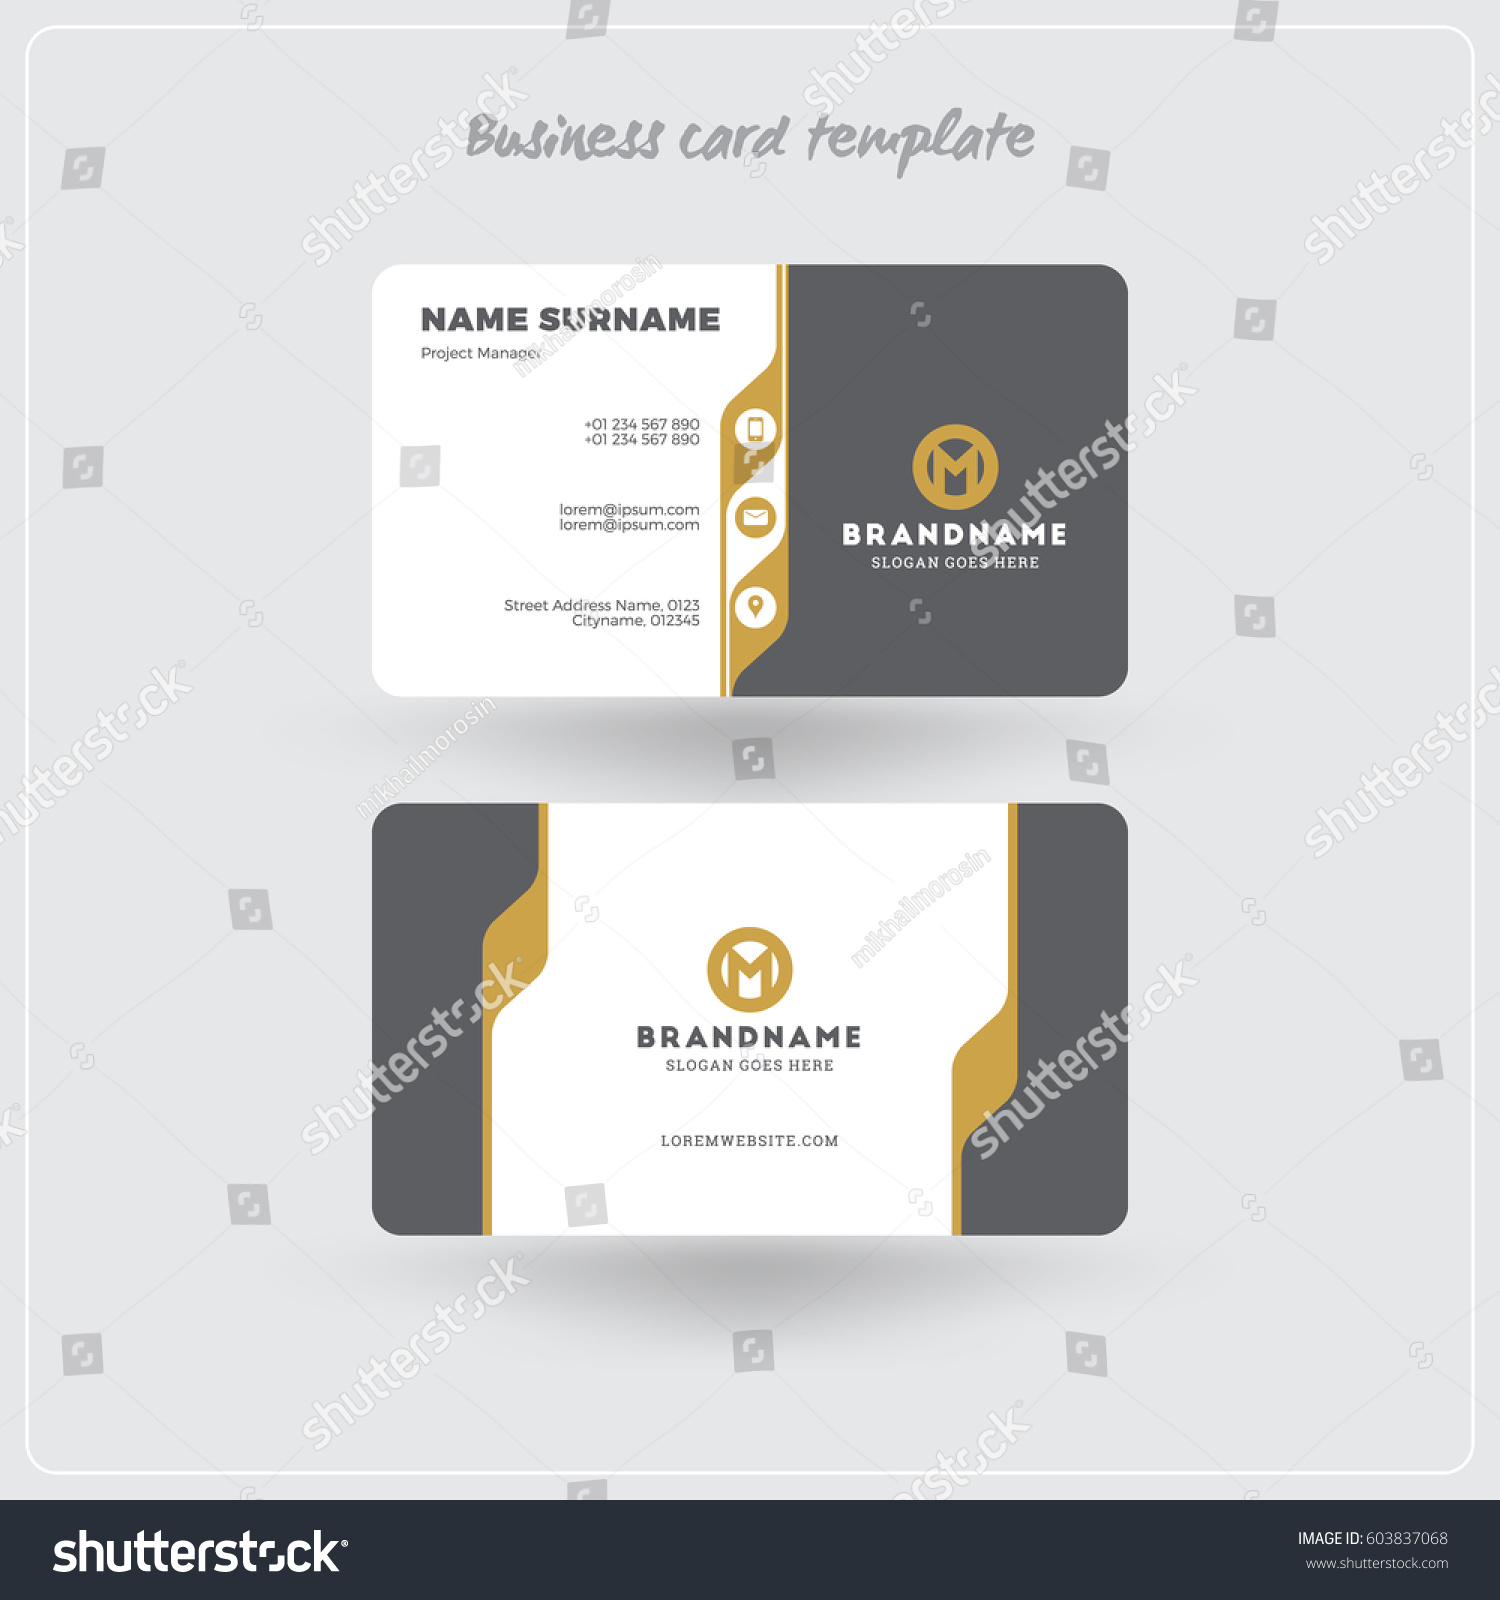 Golden gray business card print template stock vector hd royalty golden and gray business card print template personal visiting card with company logo clean cheaphphosting Image collections